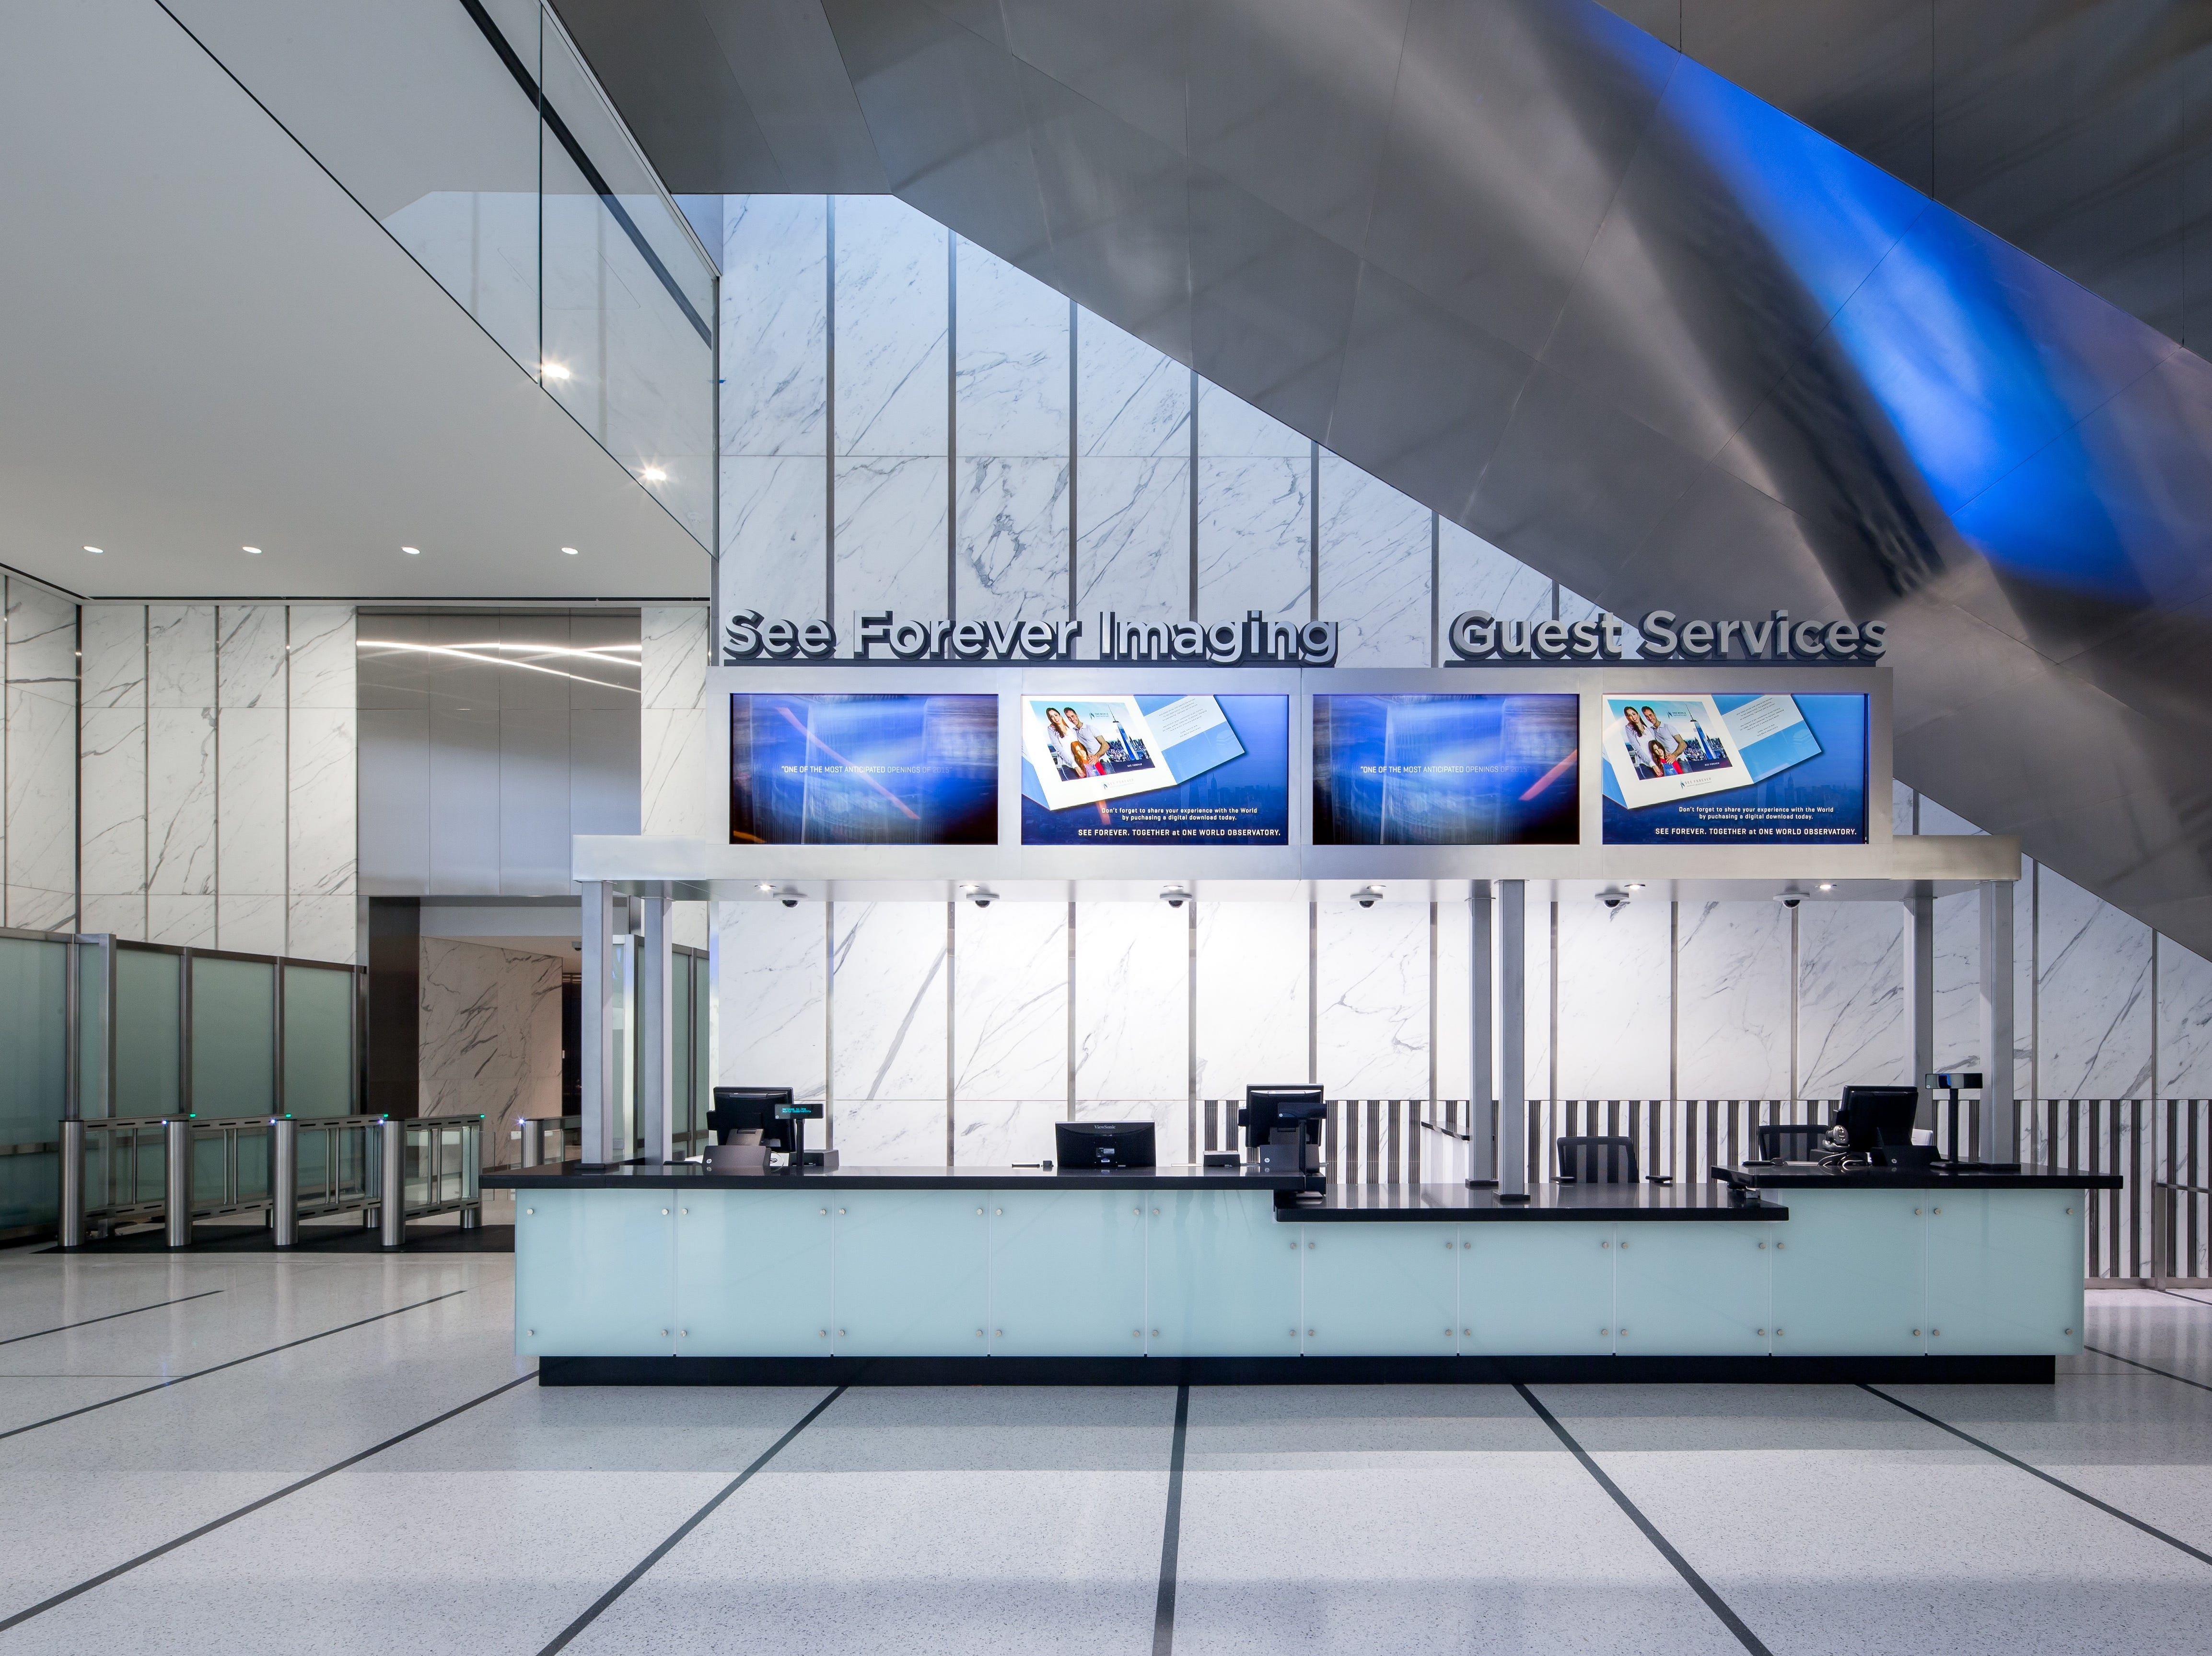 The information desk at One World Trade Center.